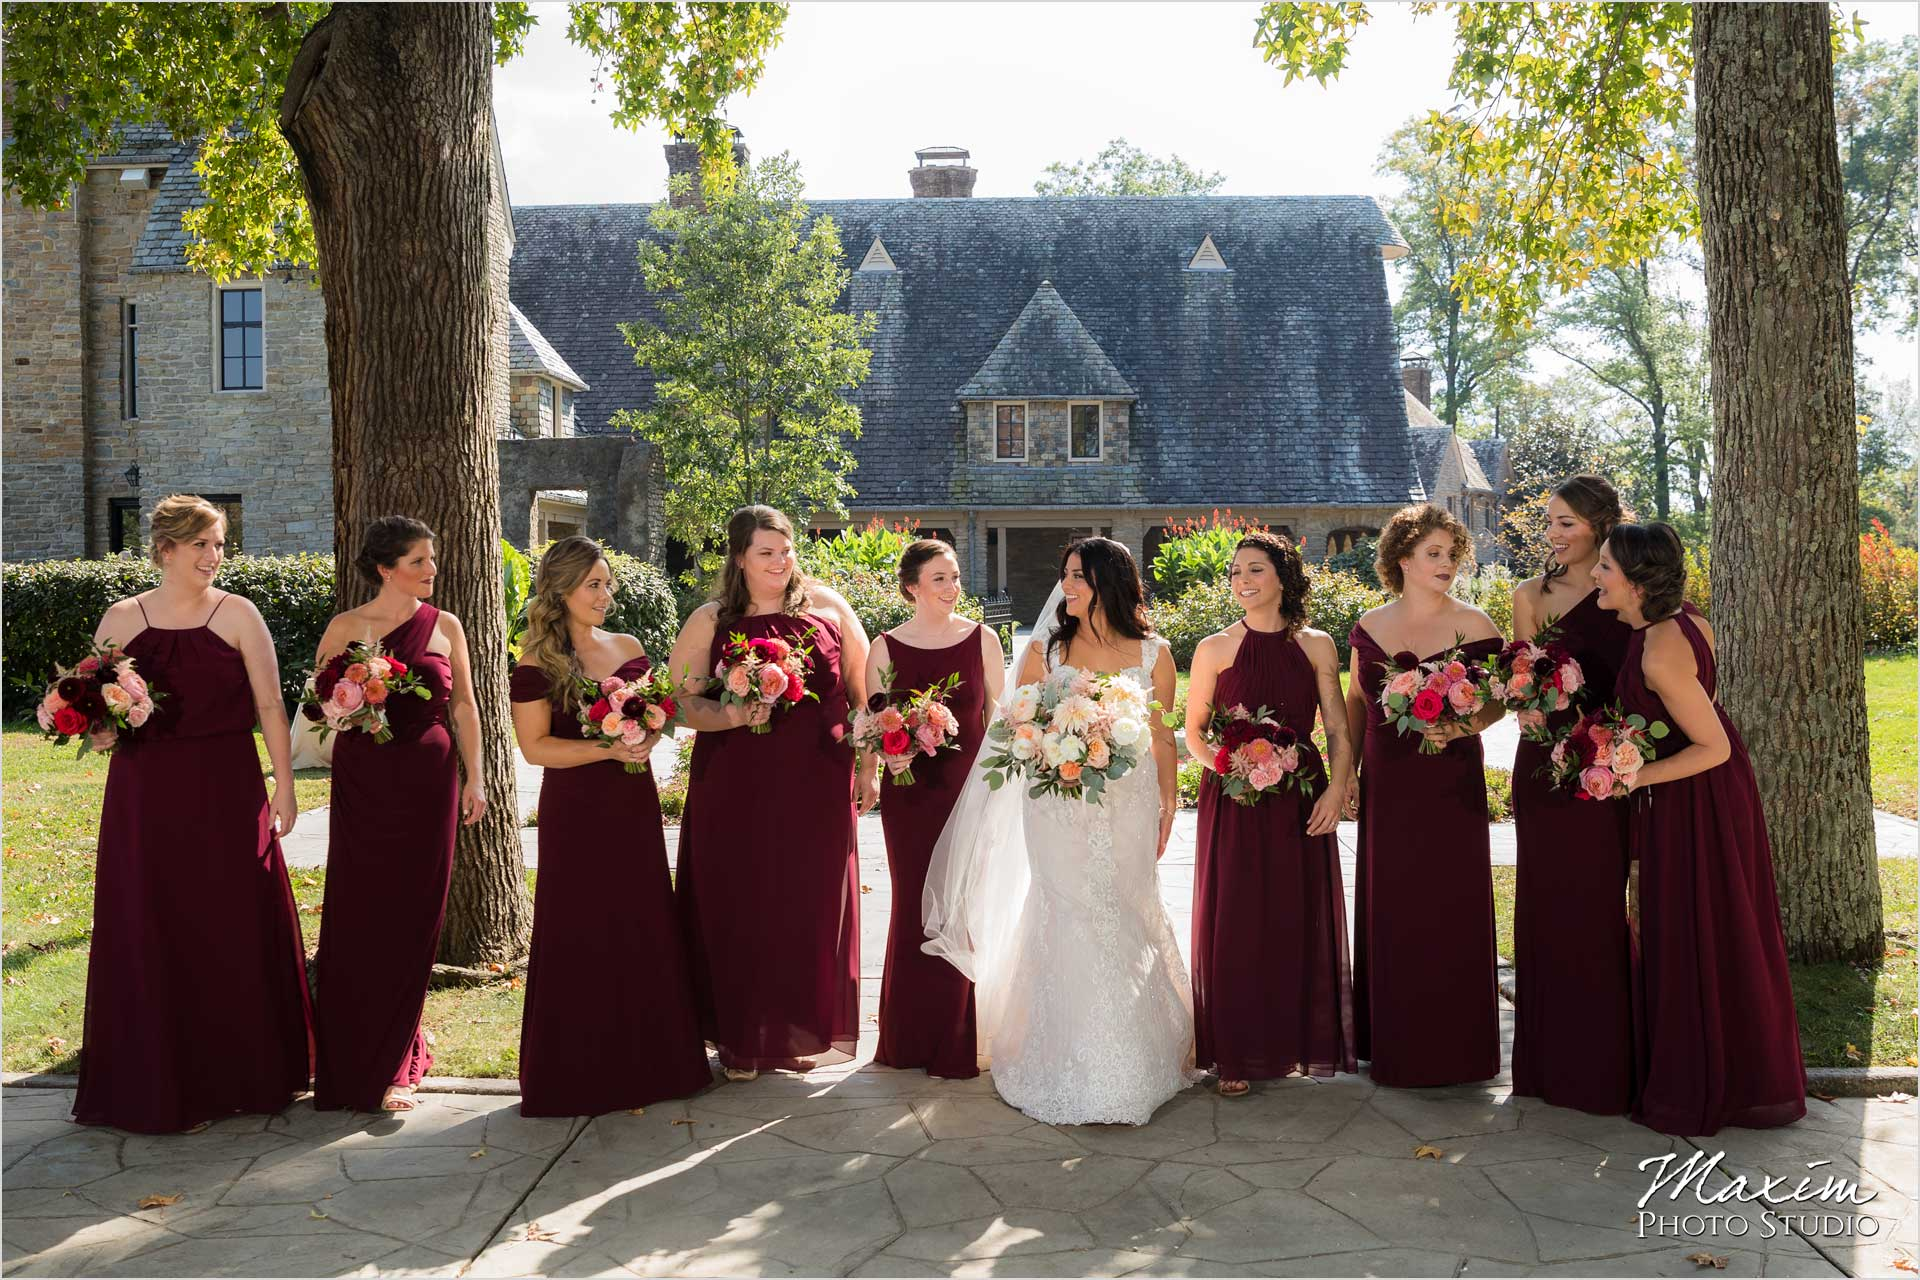 Greenacres Art Center, Cincinnati Wedding, Cincinnati Bride, Cincinnati Bridesmaids